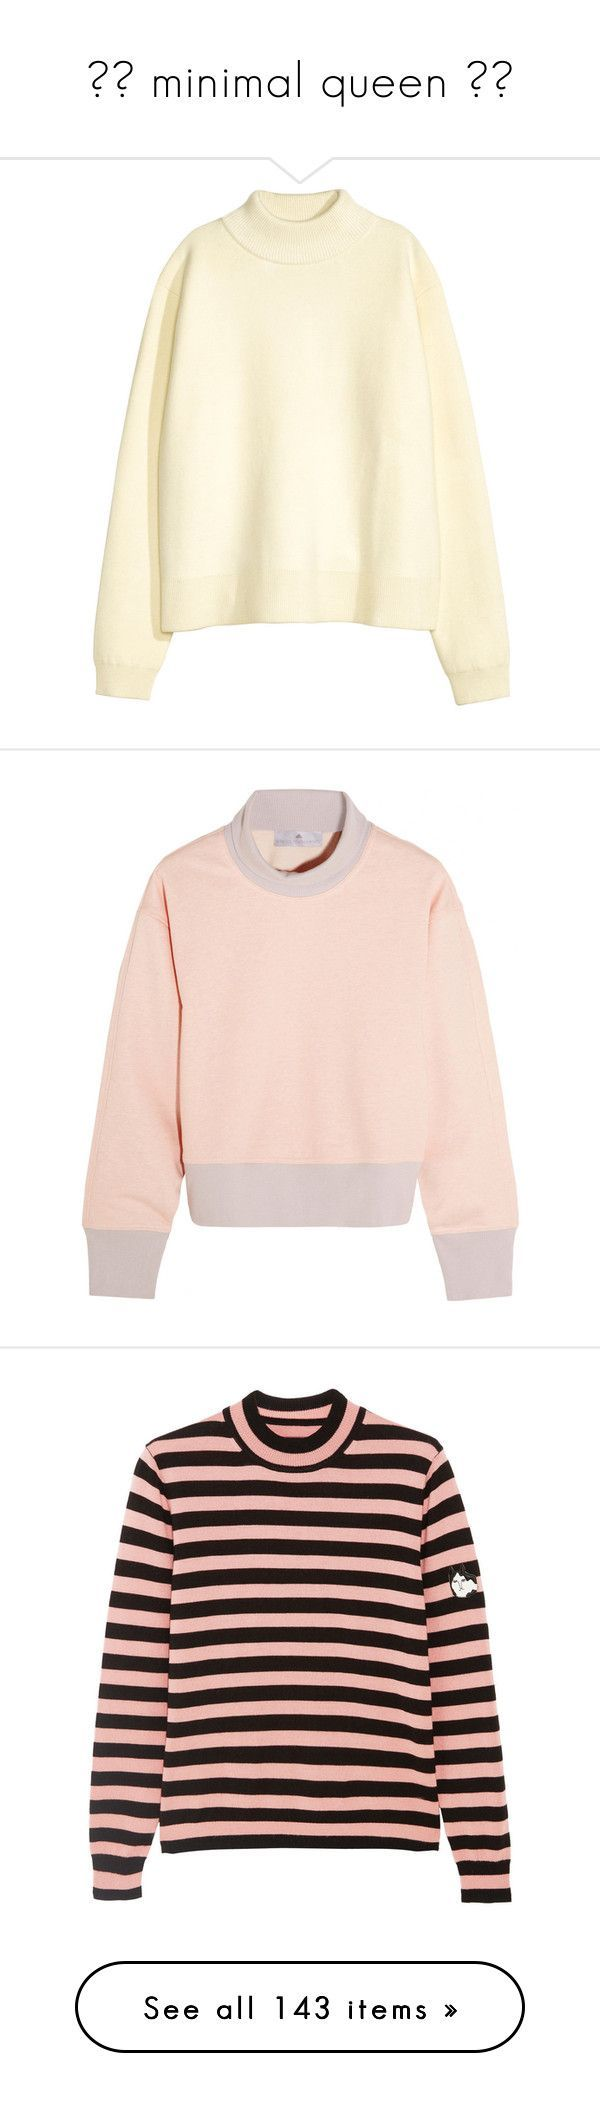 """""""✨🌙 minimal queen 🌙✨"""" by grunge-alien ❤ liked on Polyvore featuring tops, sweaters, white, white top, embellished sweaters, studded sweaters, slimming tops, balmain sweater, natural white and long sleeve tops"""